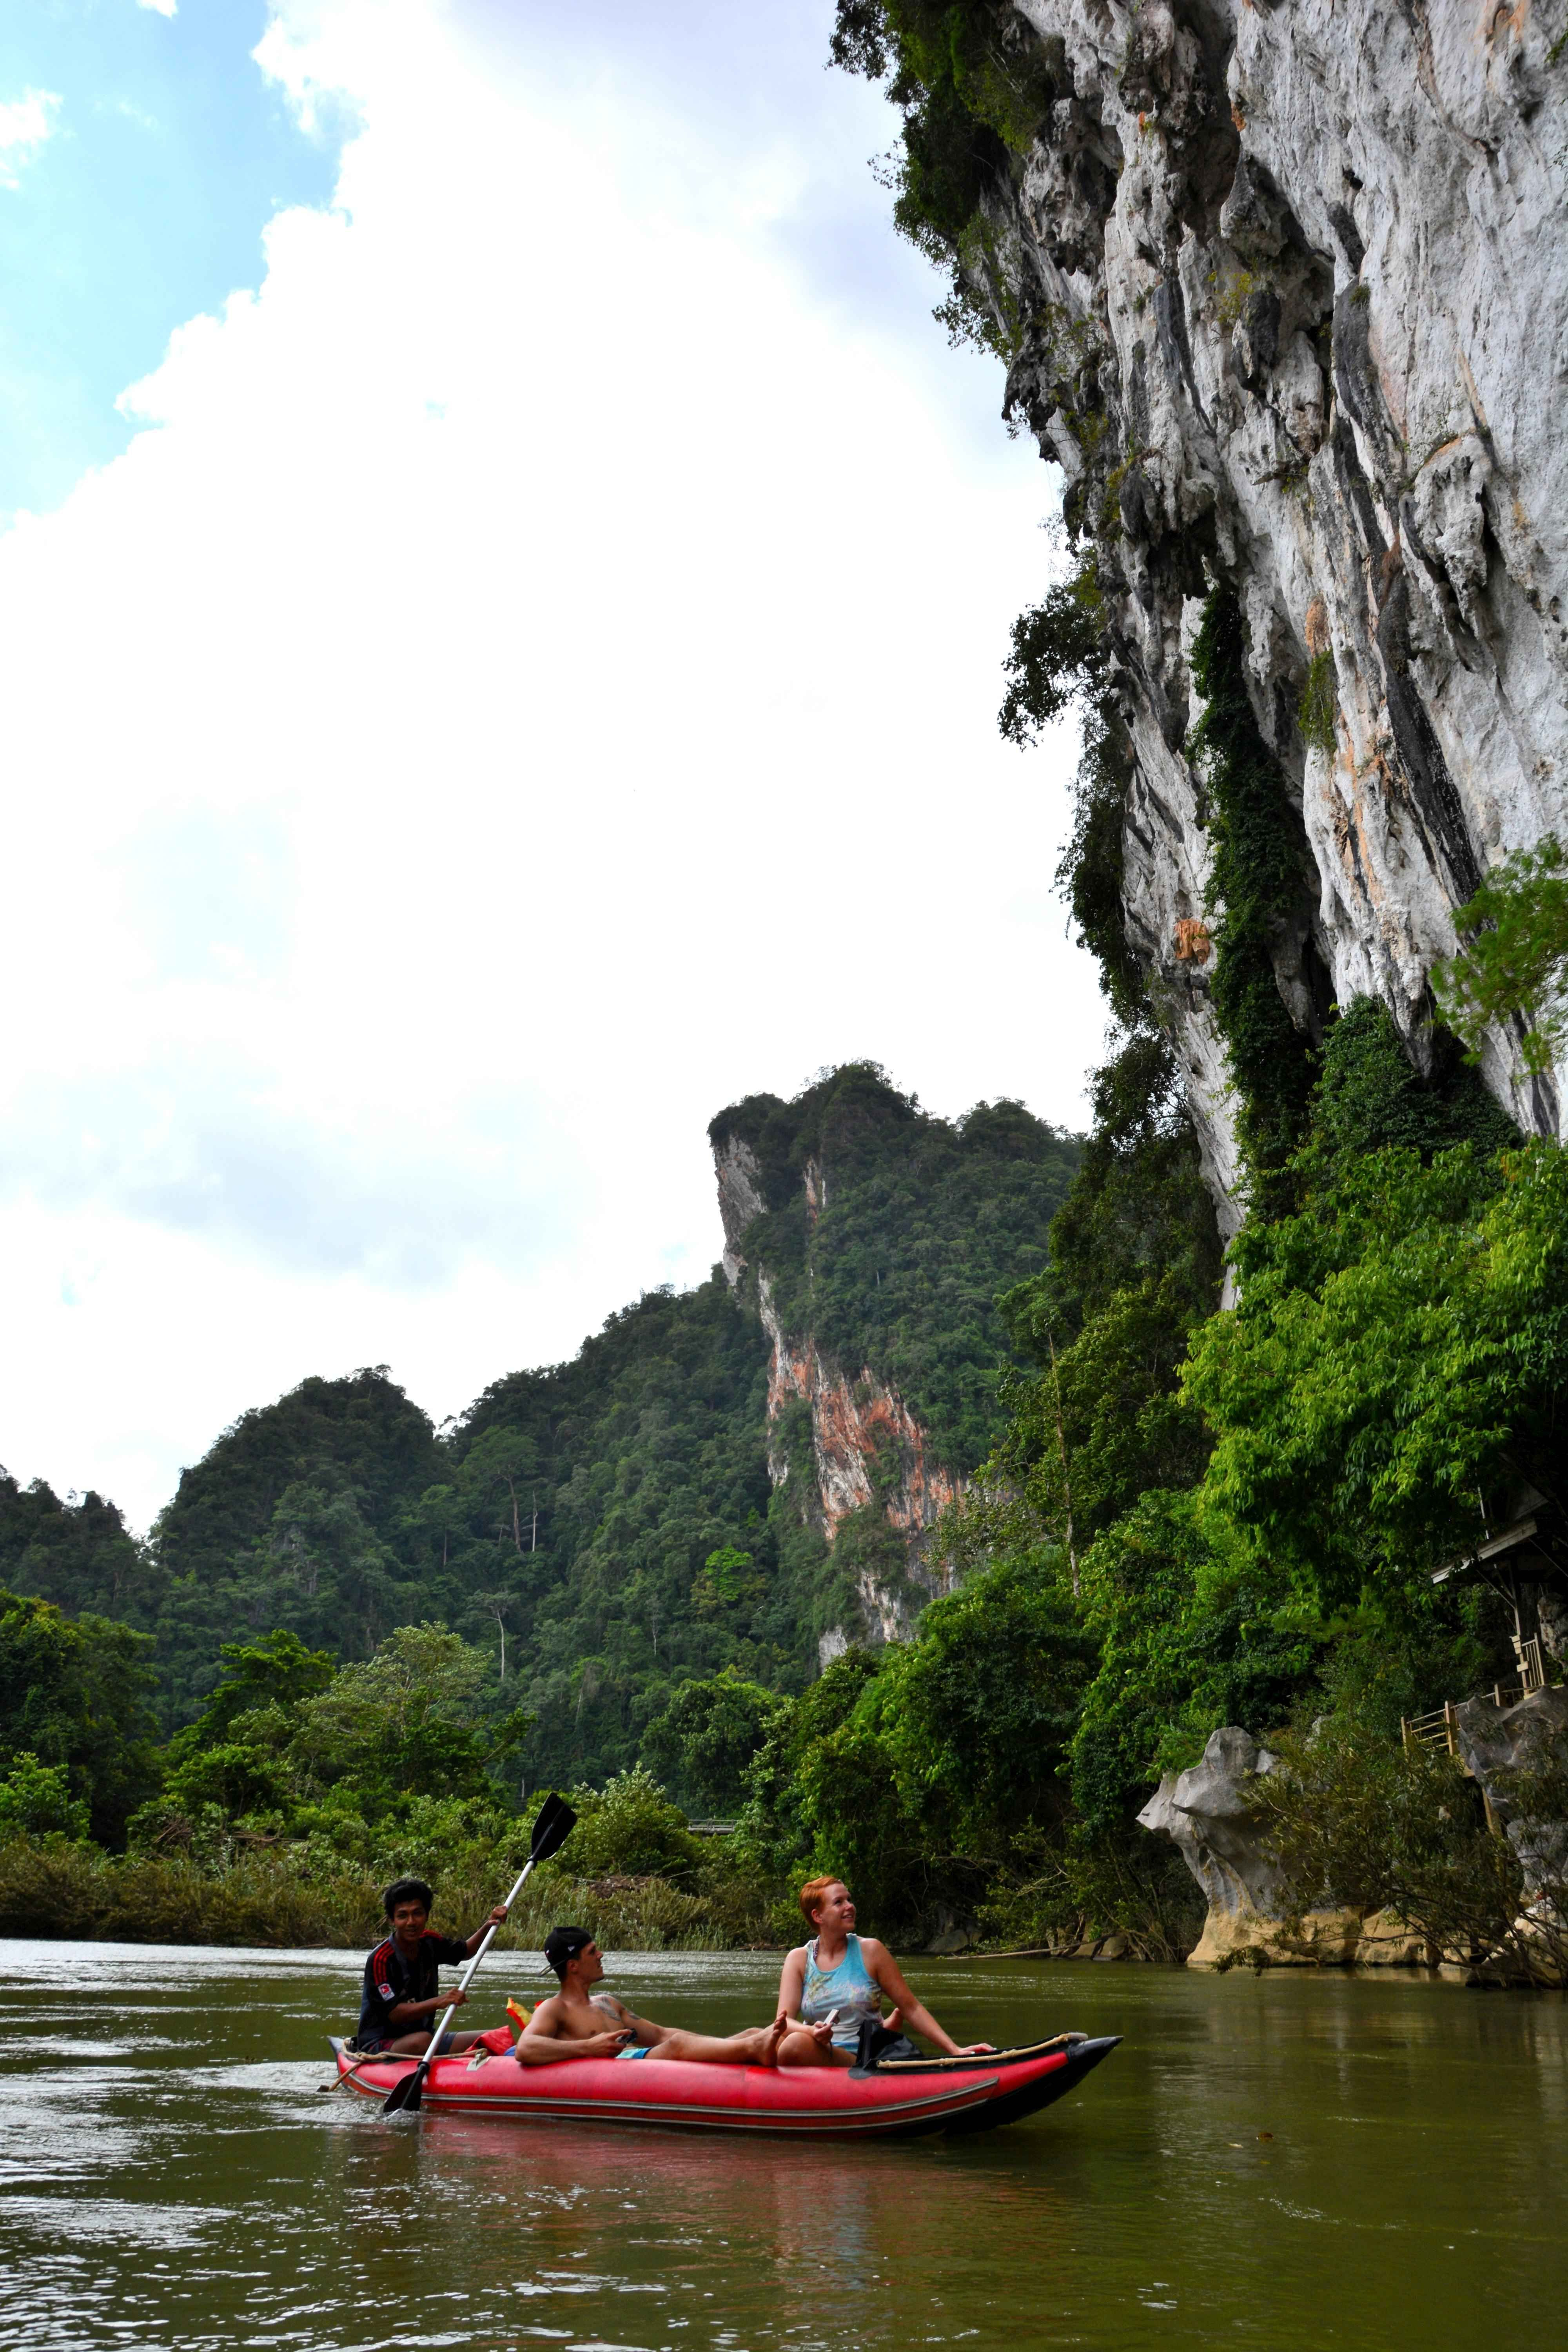 Canoeing in the sok river